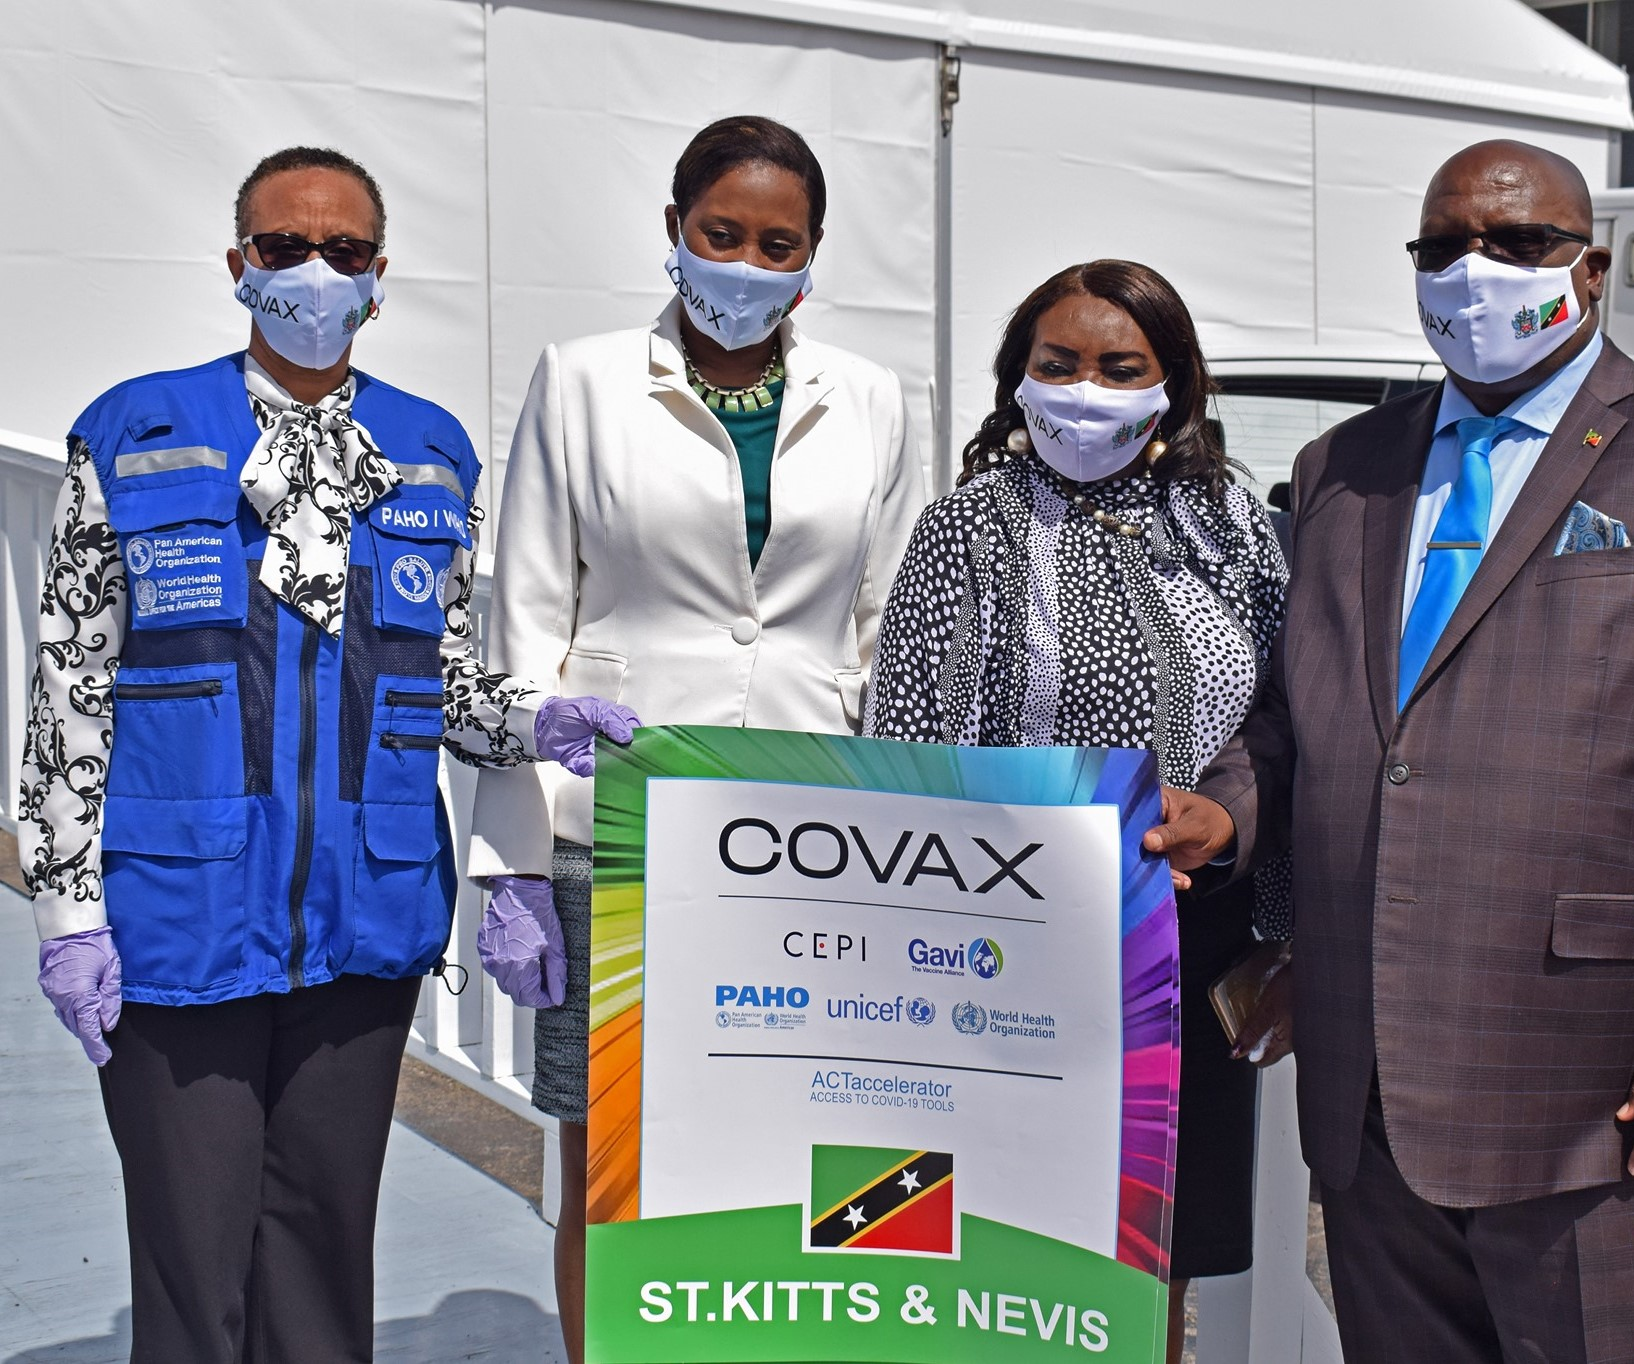 St. Kitts & Nevis receives 21,600 COVID-19 Vaccines from COVAX Facility